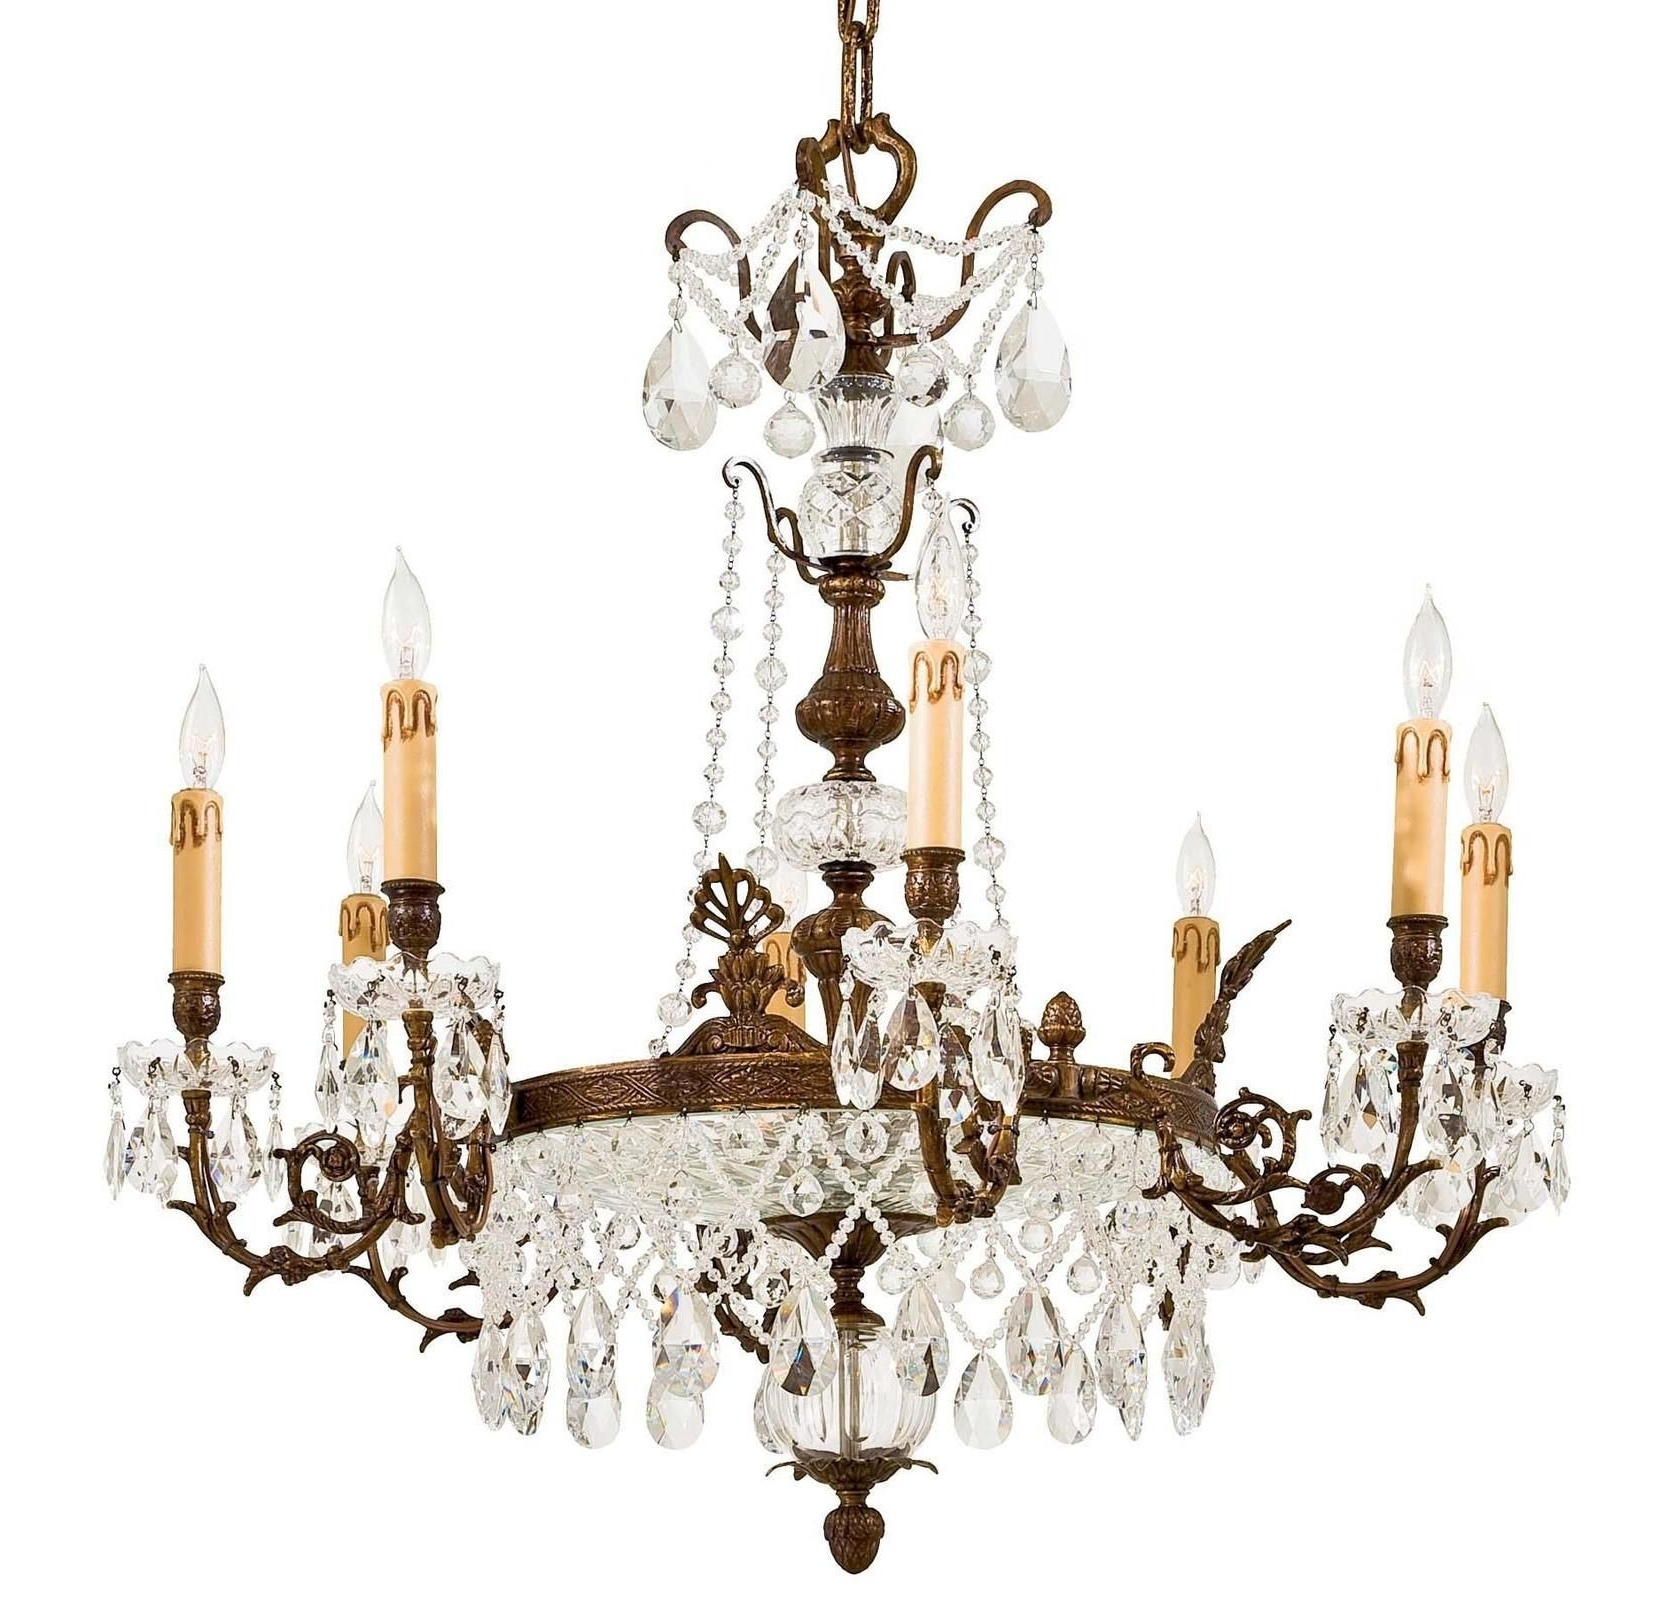 2018 Crystal Chandelier – Metropolitan ( Chandeliers Crystal Antique With Regard To Crystal Gold Chandeliers (View 1 of 20)